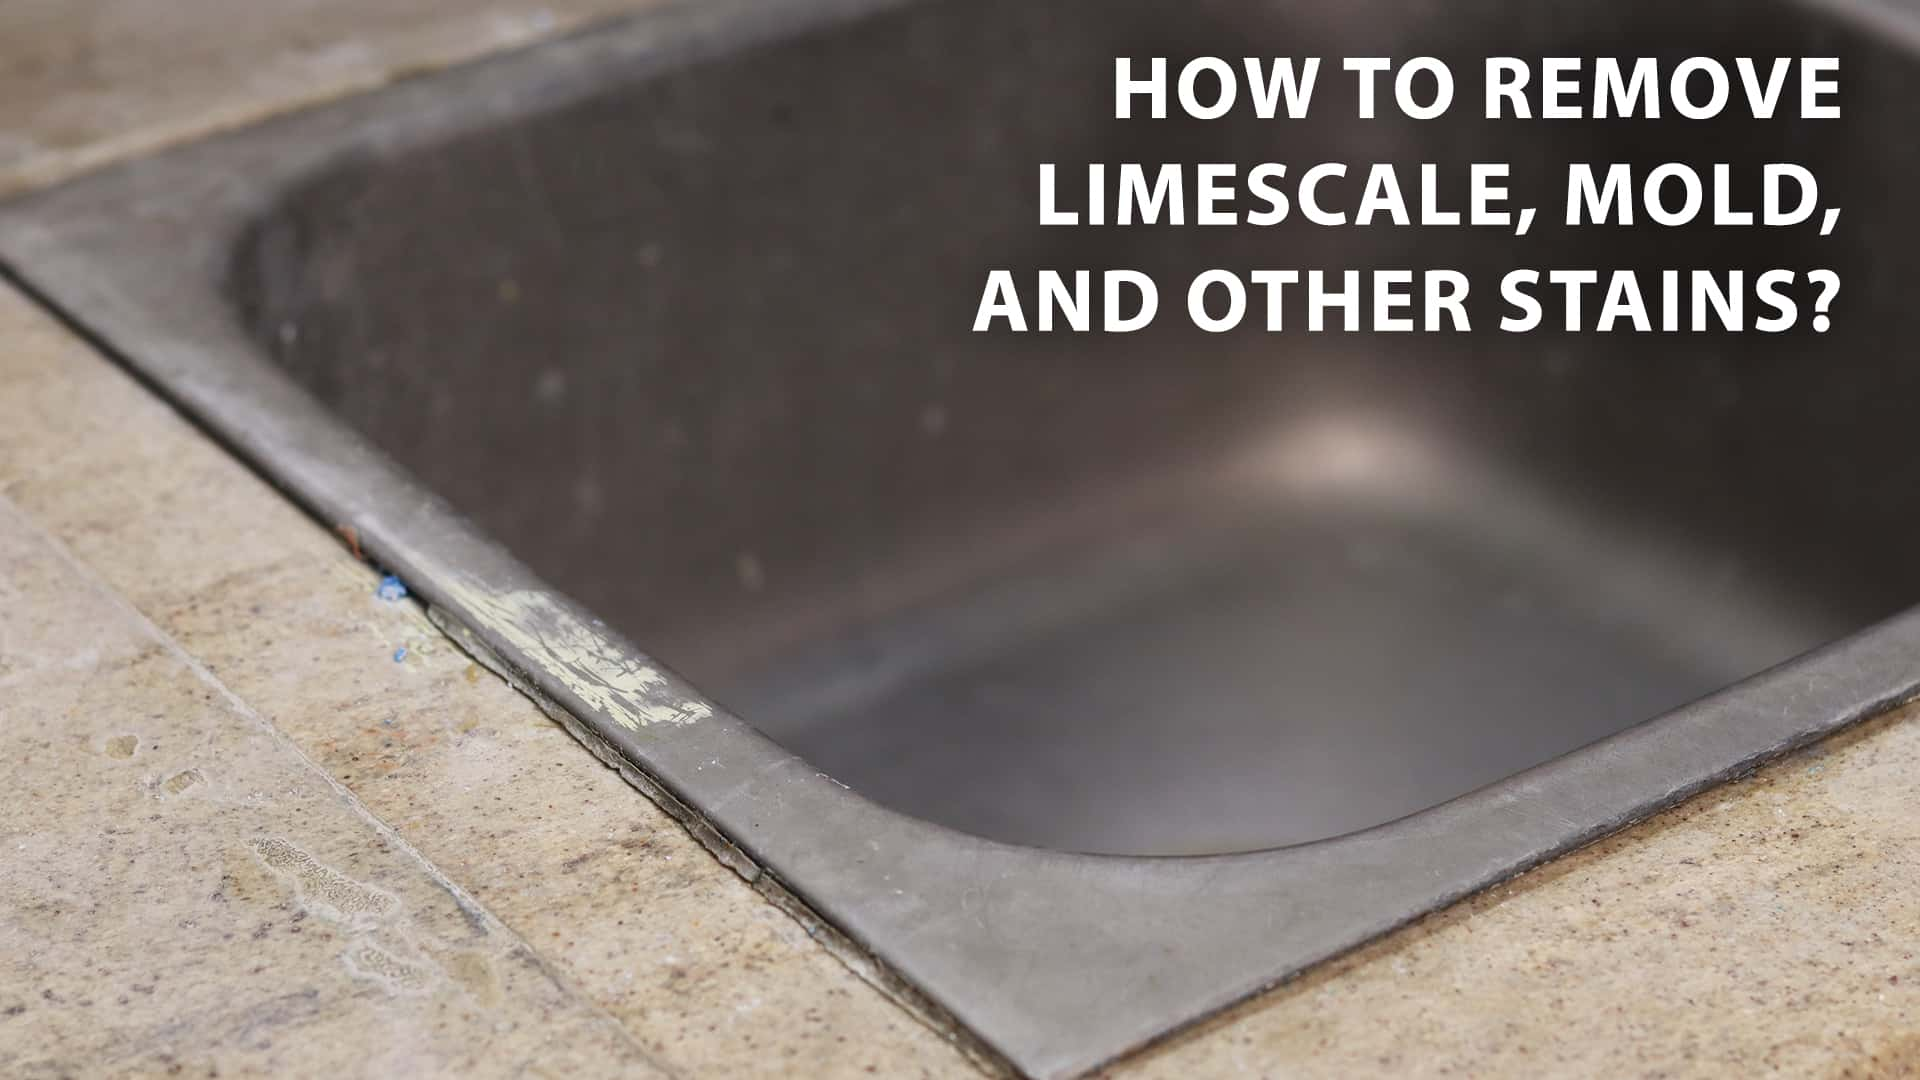 how to remove limescale, mold, and other stains